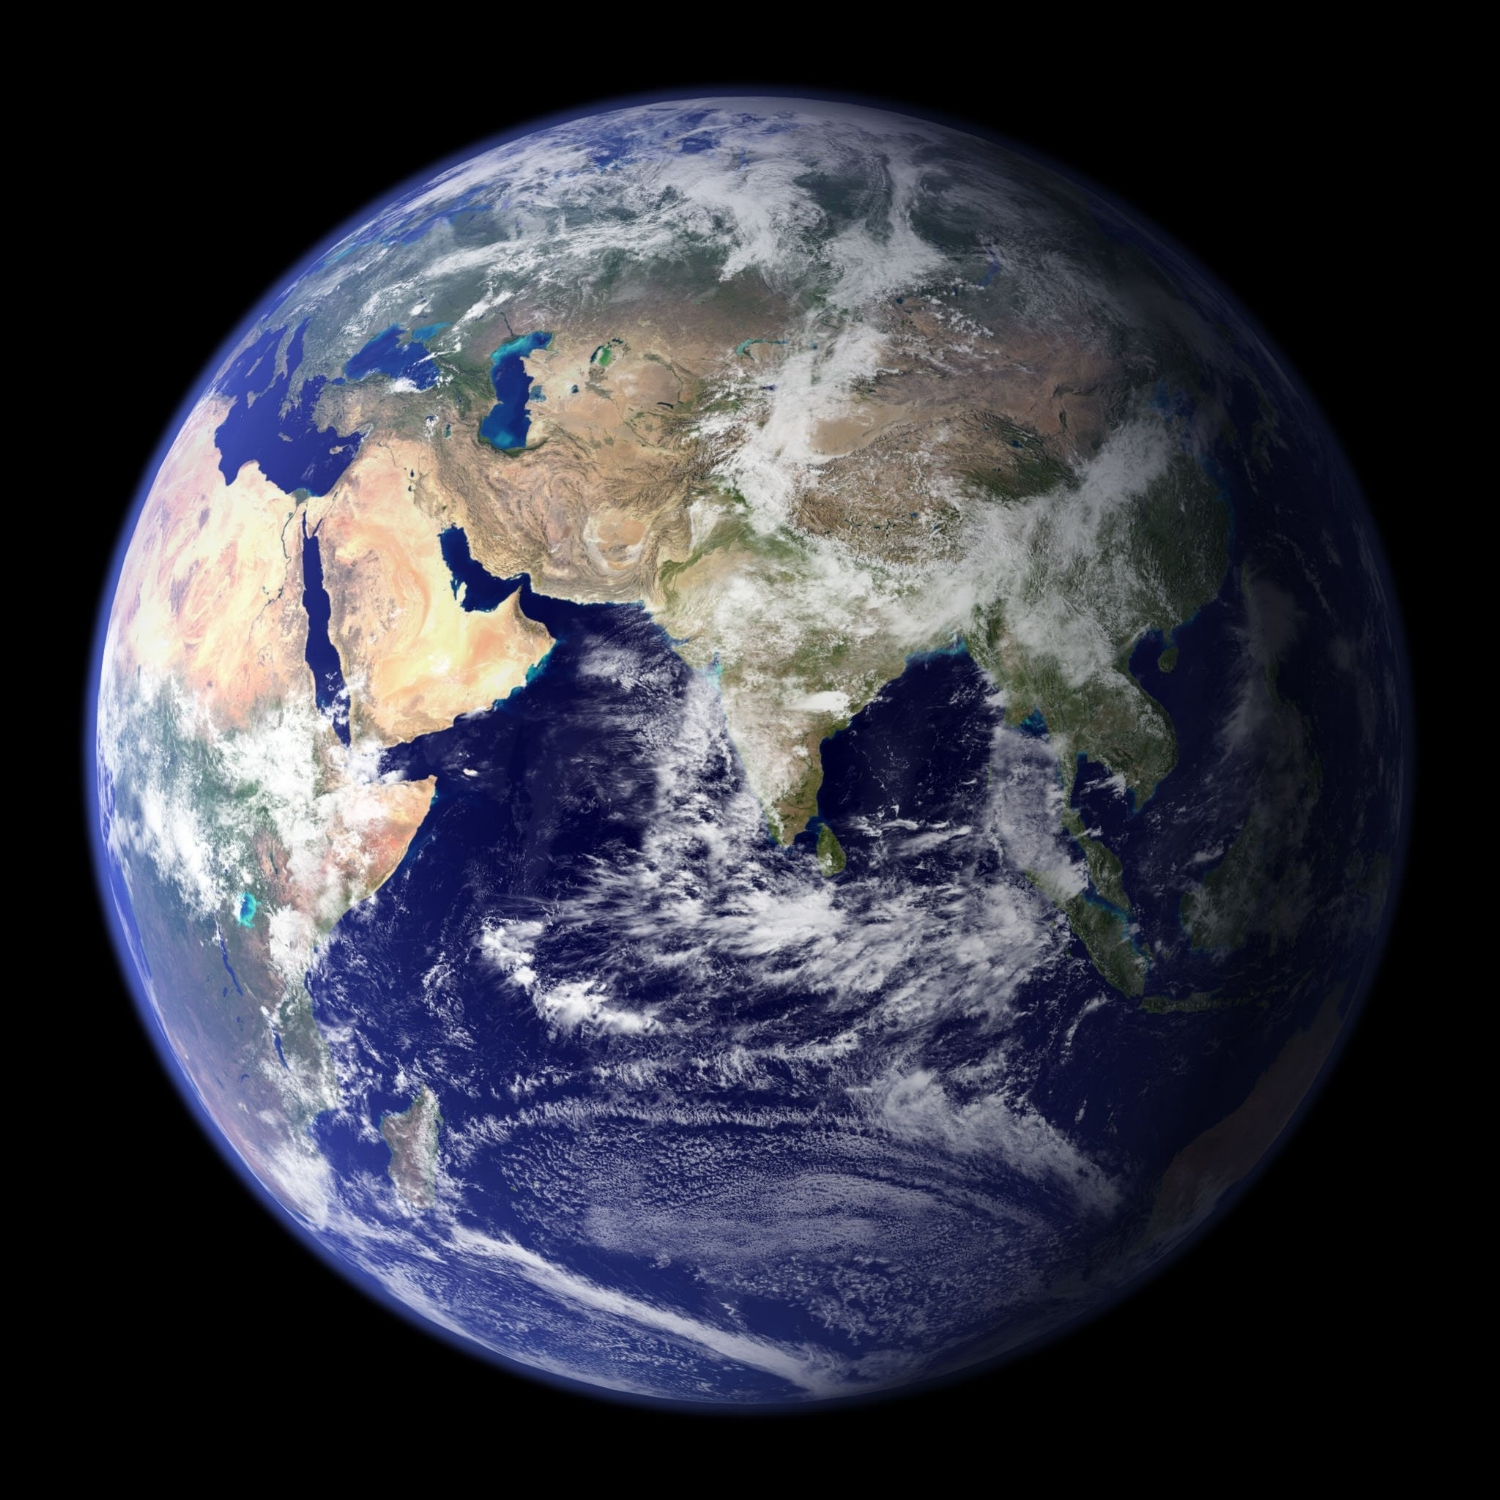 blue-planet-earth-globe-41953.jpg